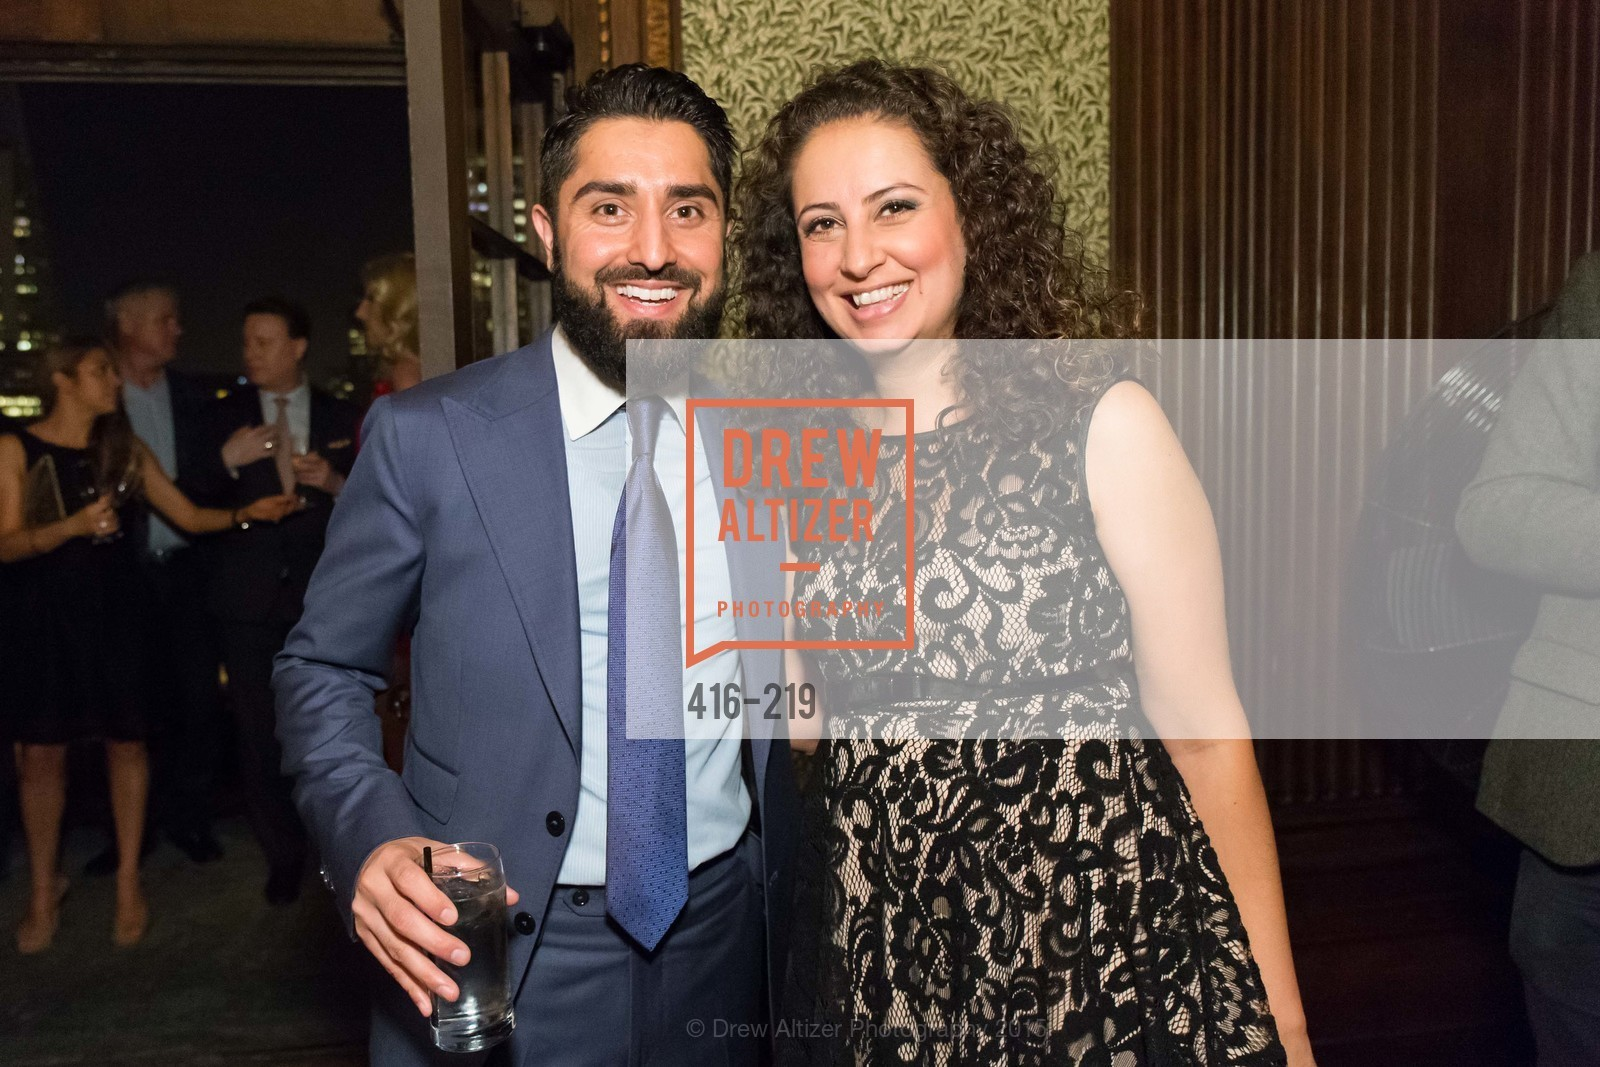 Roh Habibi, Fatima Lavour, Champagne Reception & Screening of Million Dollar Listing San Francisco, University Club. 800 Powell St, August 5th, 2015,Drew Altizer, Drew Altizer Photography, full-service agency, private events, San Francisco photographer, photographer california